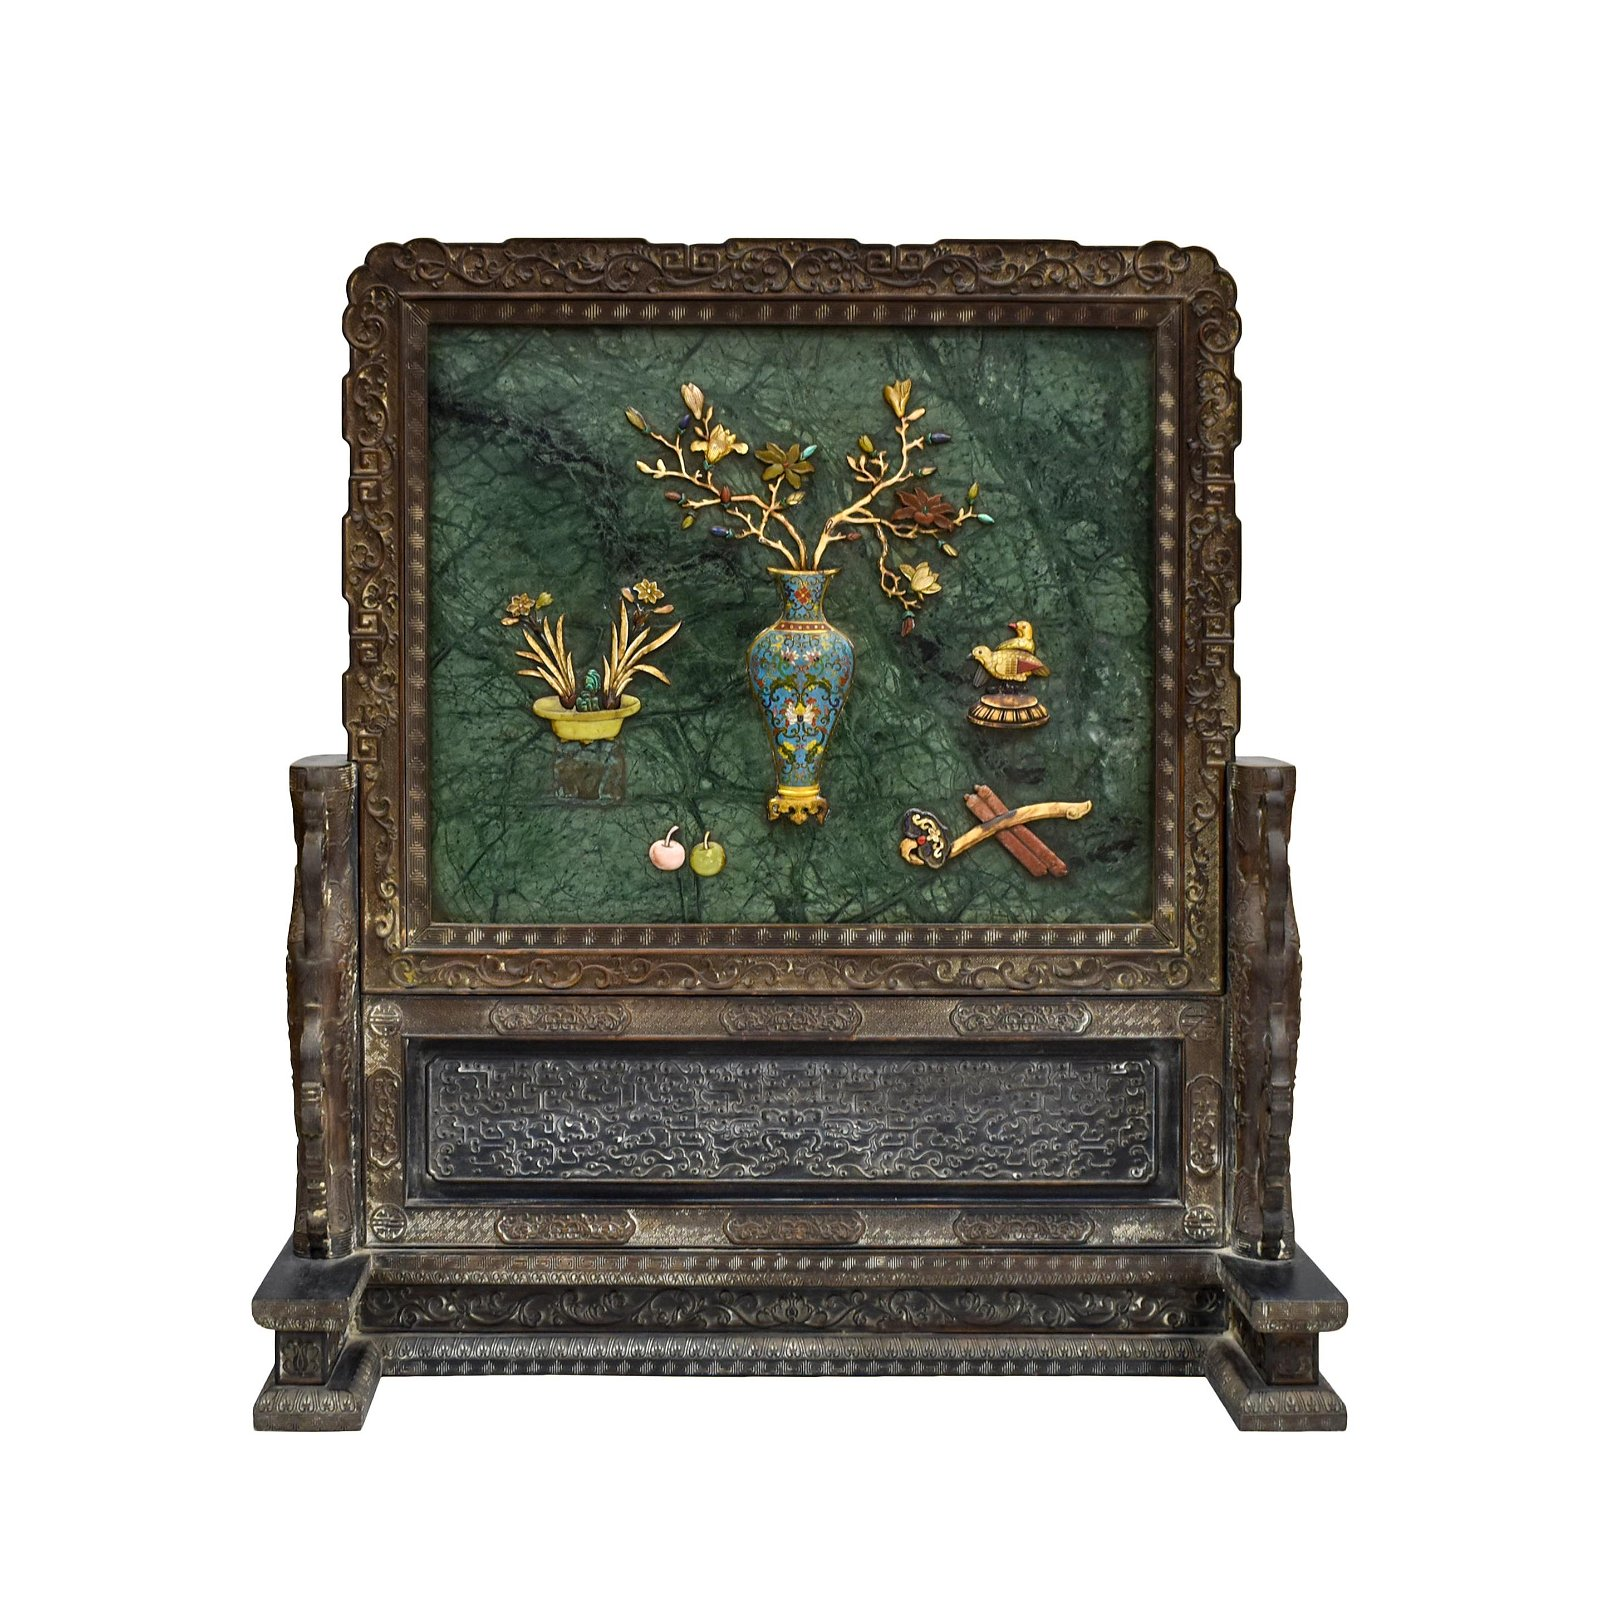 LARGE GREEN JADE AND STONES INLAID SCREEN